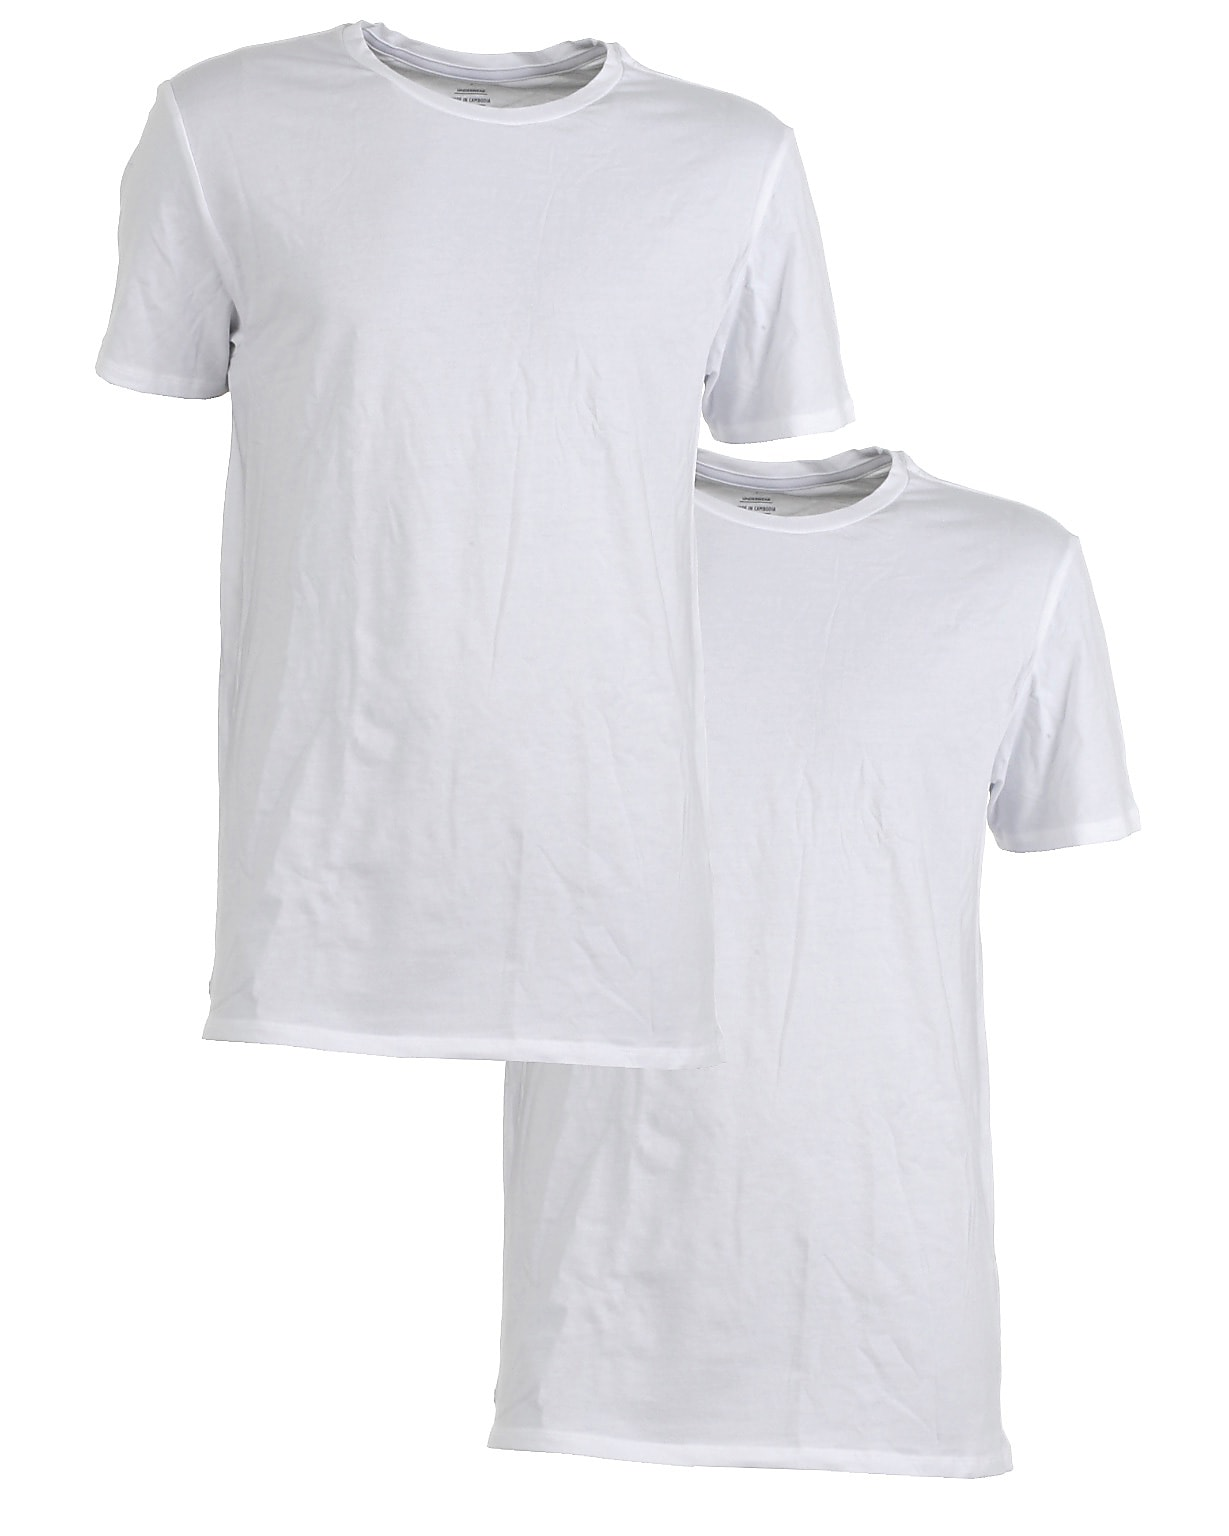 Image of Lacoste 2-pak t-shirt s/s, Casual, hvid